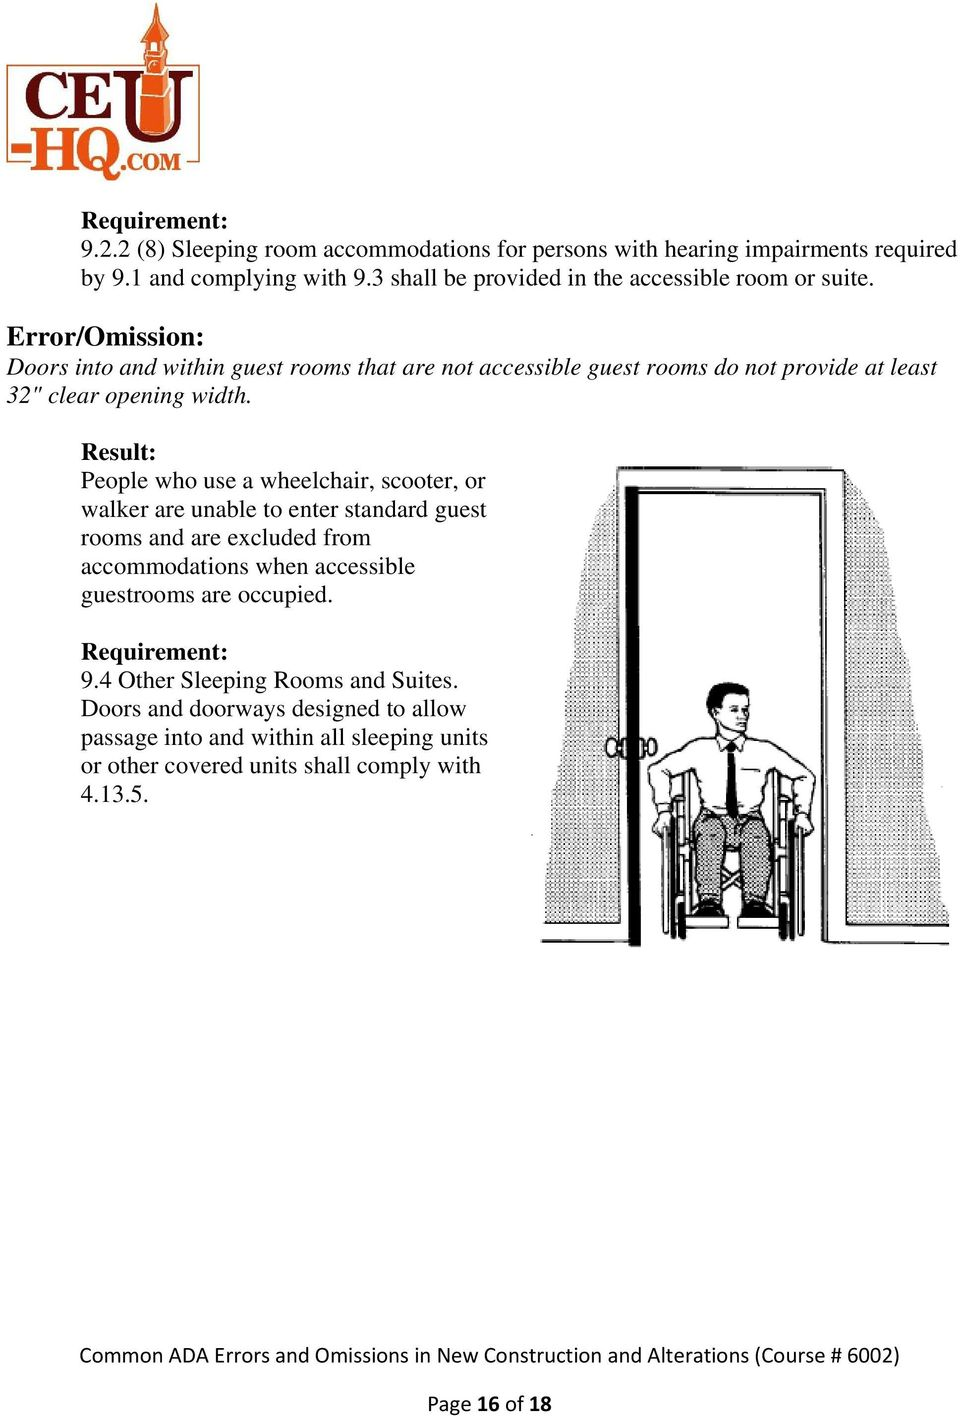 "Doors into and within guest rooms that are not accessible guest rooms do not provide at least 32"" clear opening width."